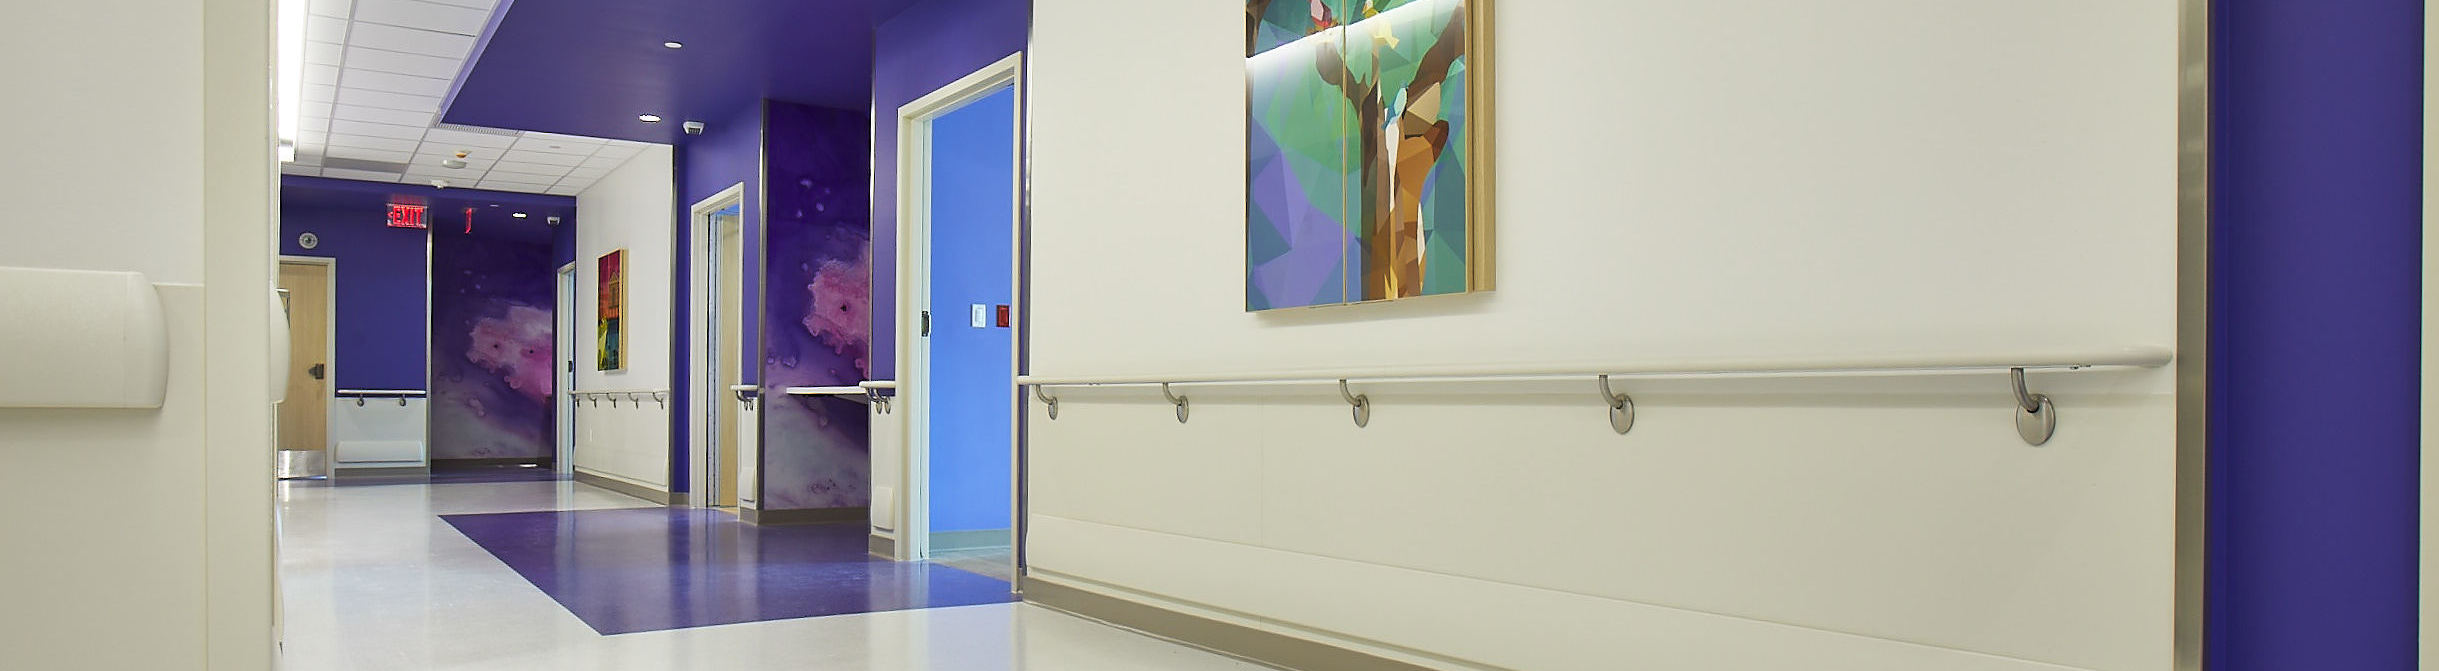 SureContact Handrail installed in a hospital